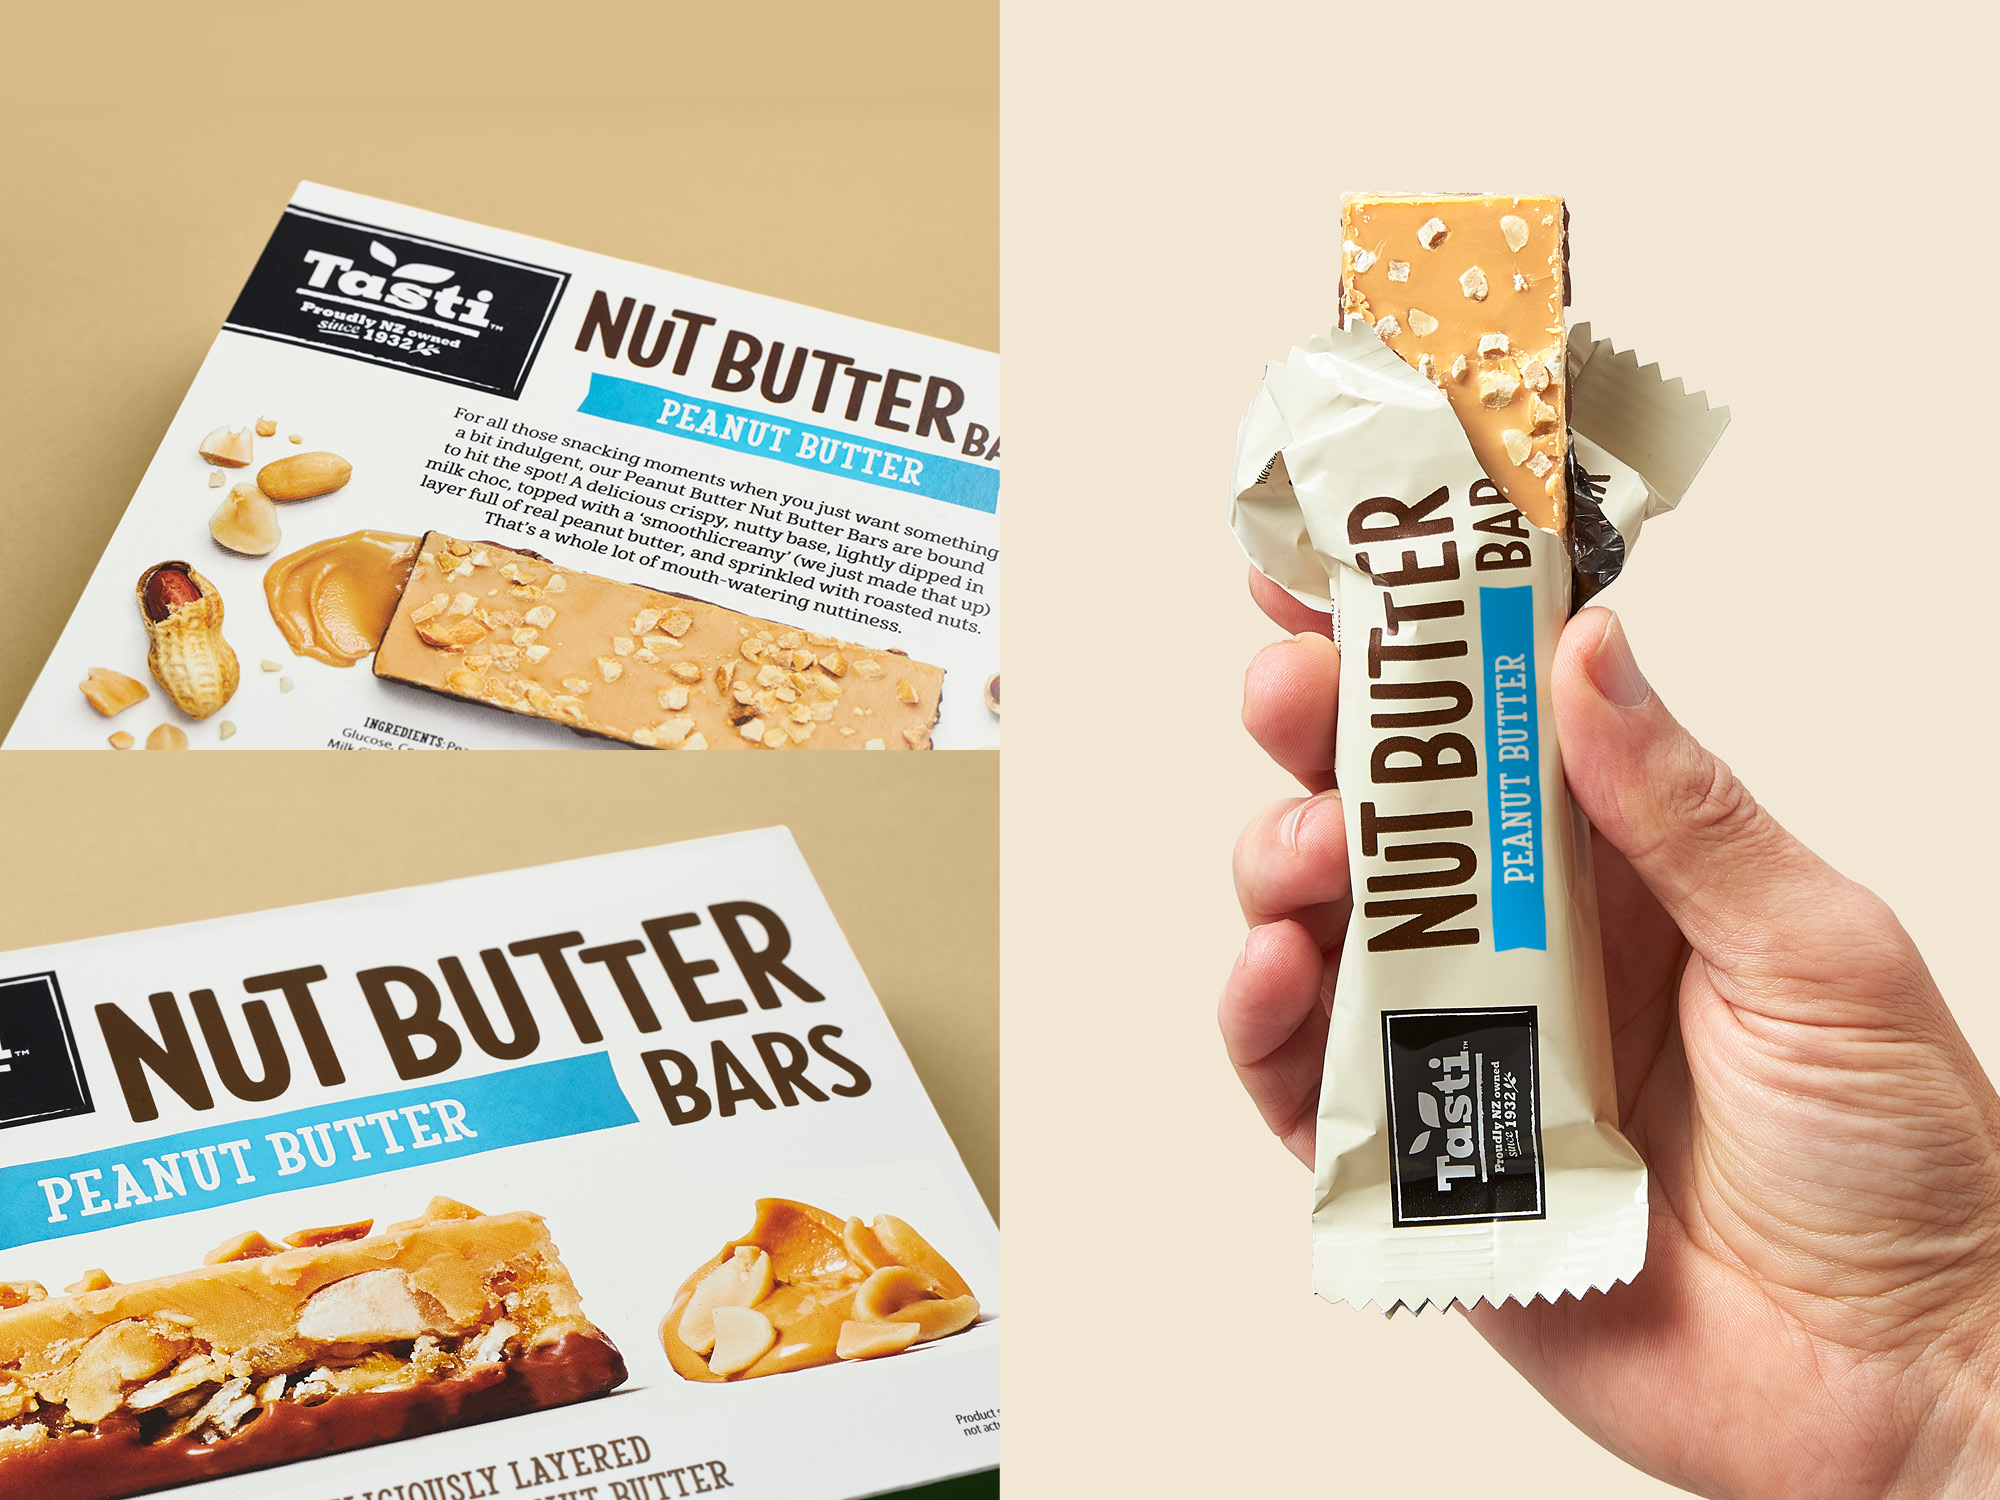 onfire design tast nut butter bar packaging design 9